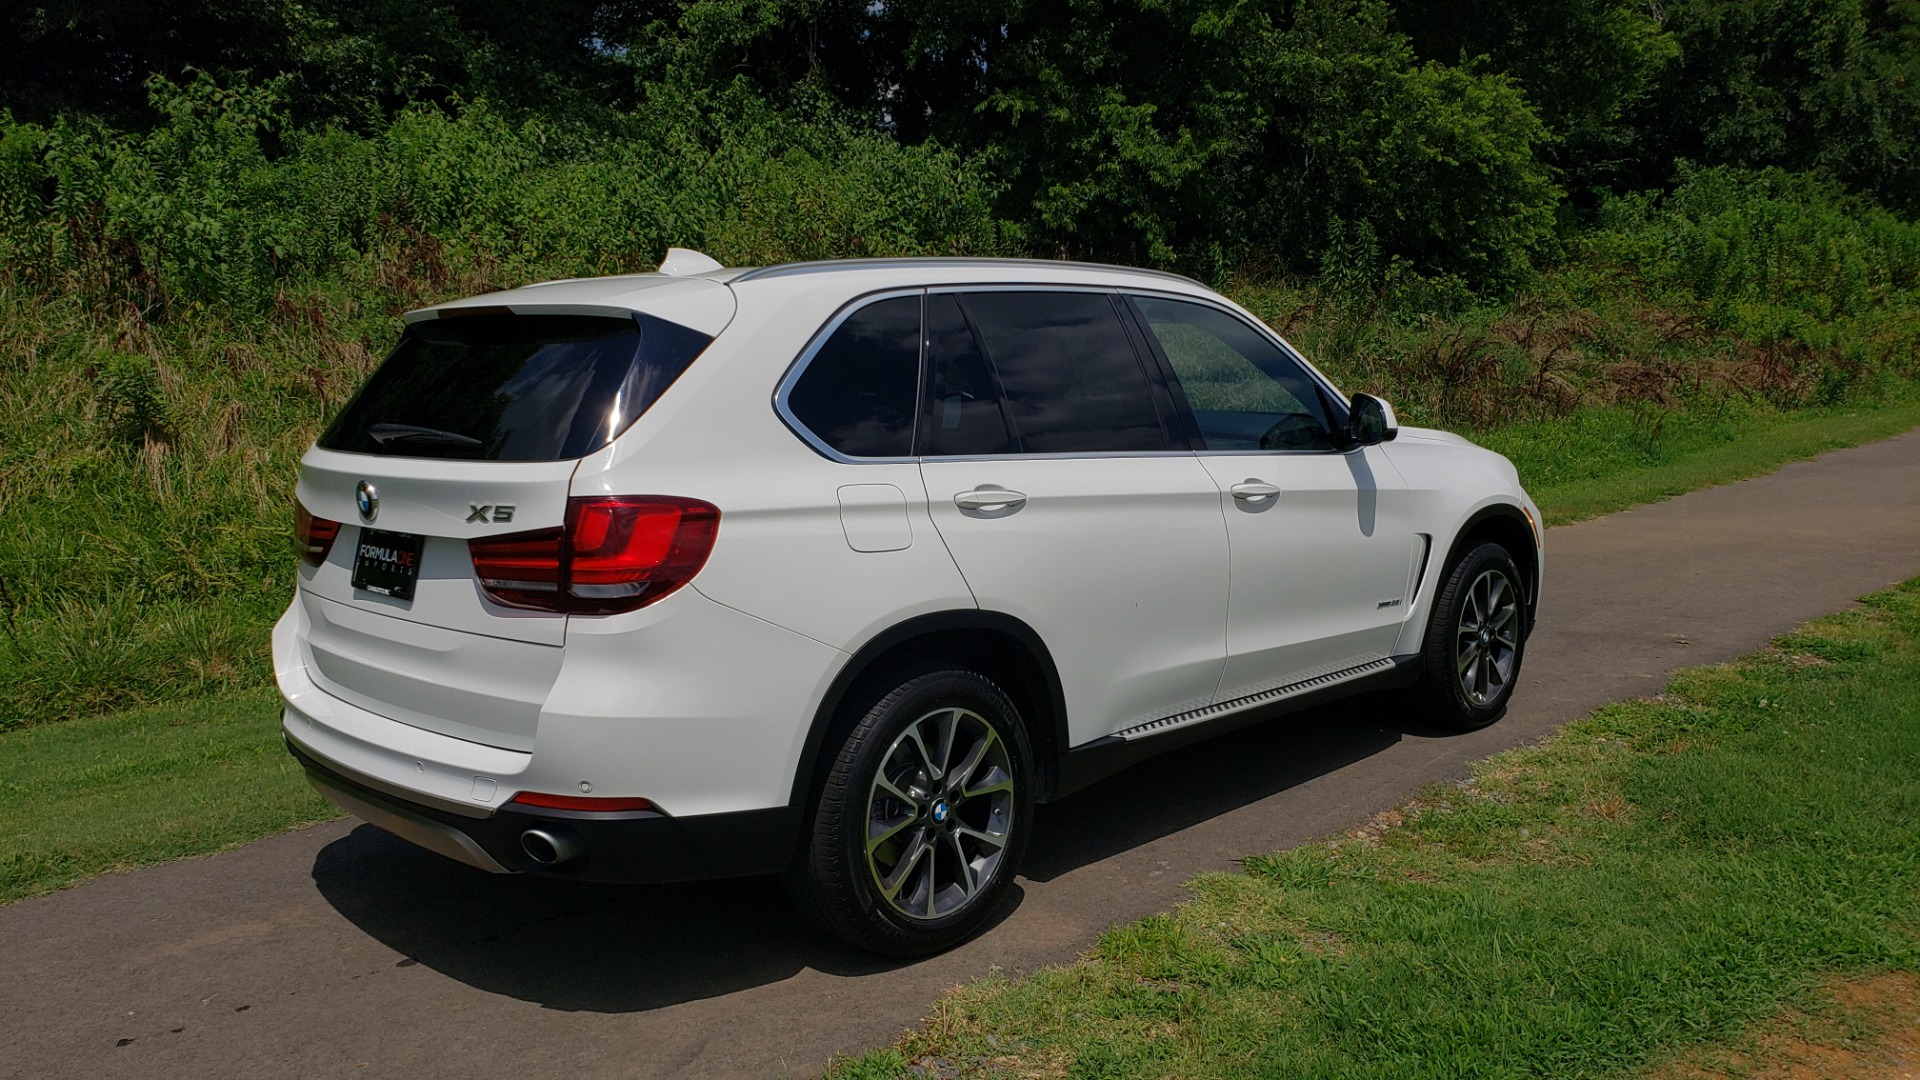 Used 2017 BMW X5 XDRIVE35I / NAV / SUNROOF / RUNNING BOARDS / REARVIEW for sale $33,995 at Formula Imports in Charlotte NC 28227 16